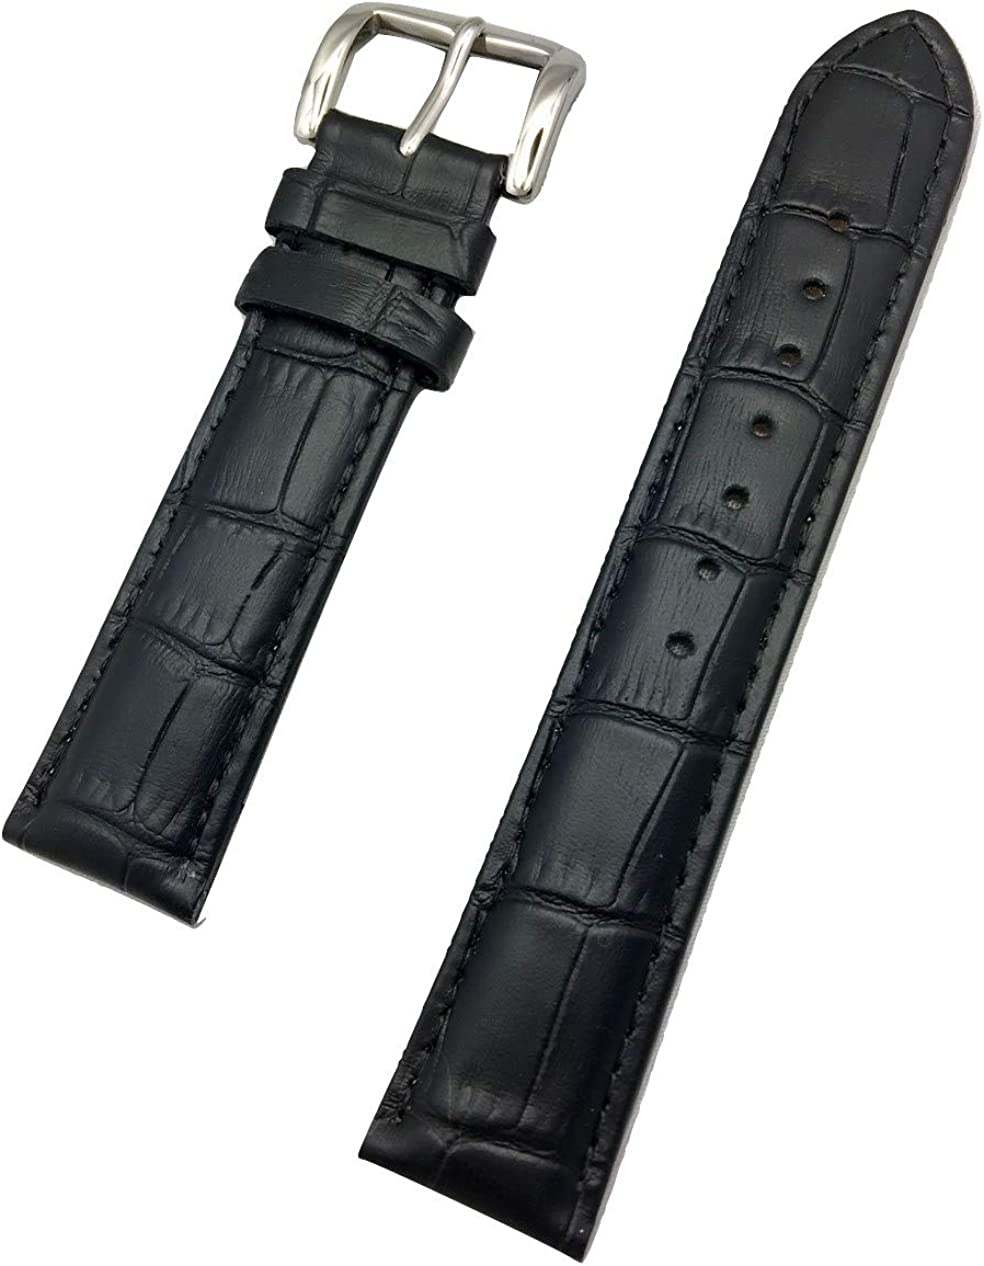 19mm Black Genuine Leather Watch Band   Square Alligator Crocodile Grained, Lightly Padded Replacement Wrist Strap that brings New Life to Any Watch (Mens Standard Length)